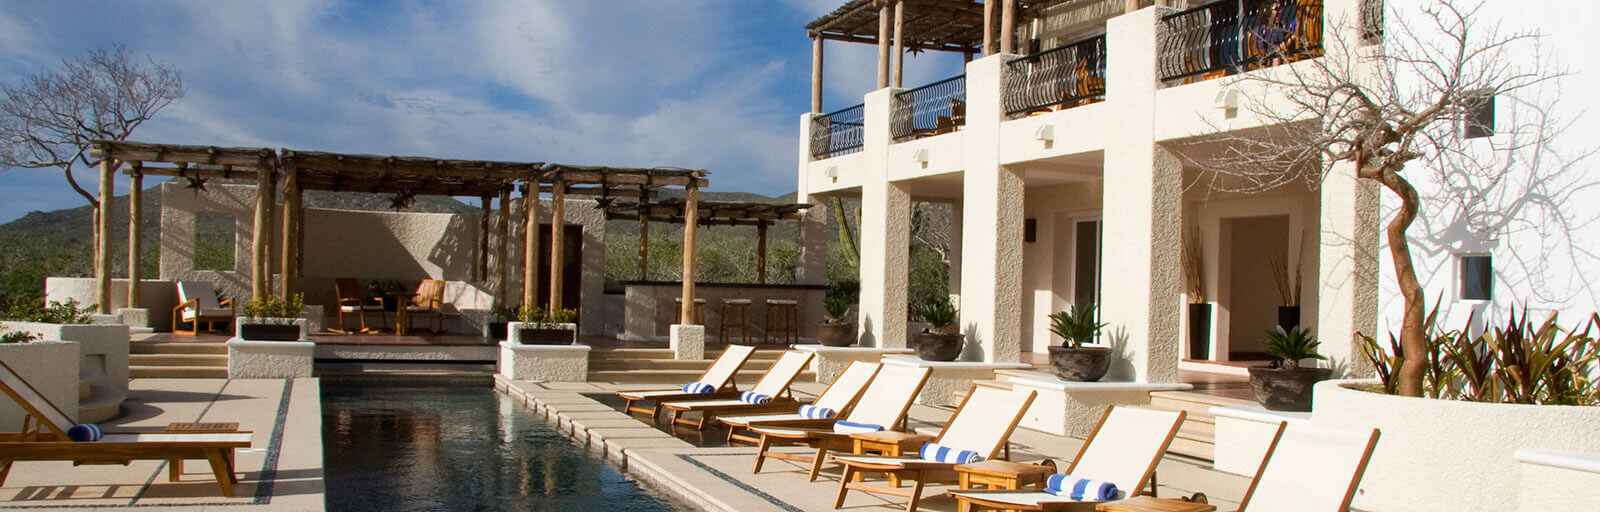 Yoga Retreats in Mexico: Swimming Pool & Community Building